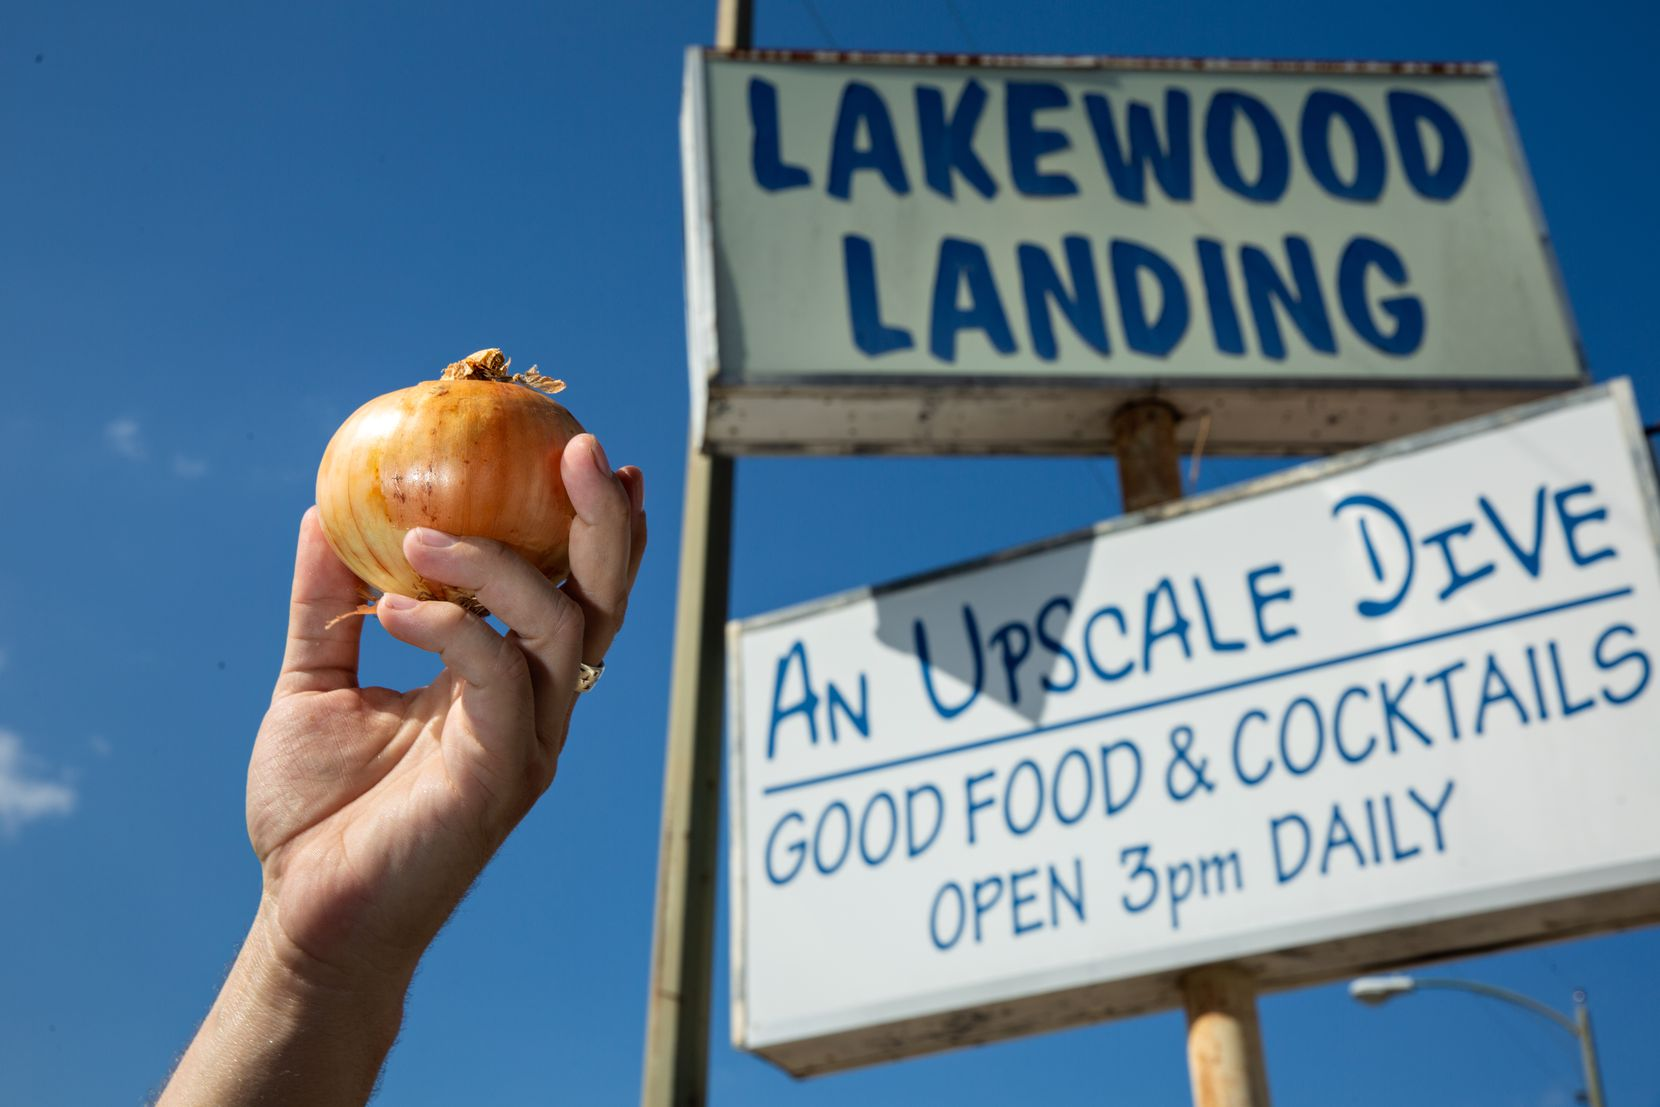 Lakewood Landing in Dallas is serving up Noonday onion rings, which are famously sweet.